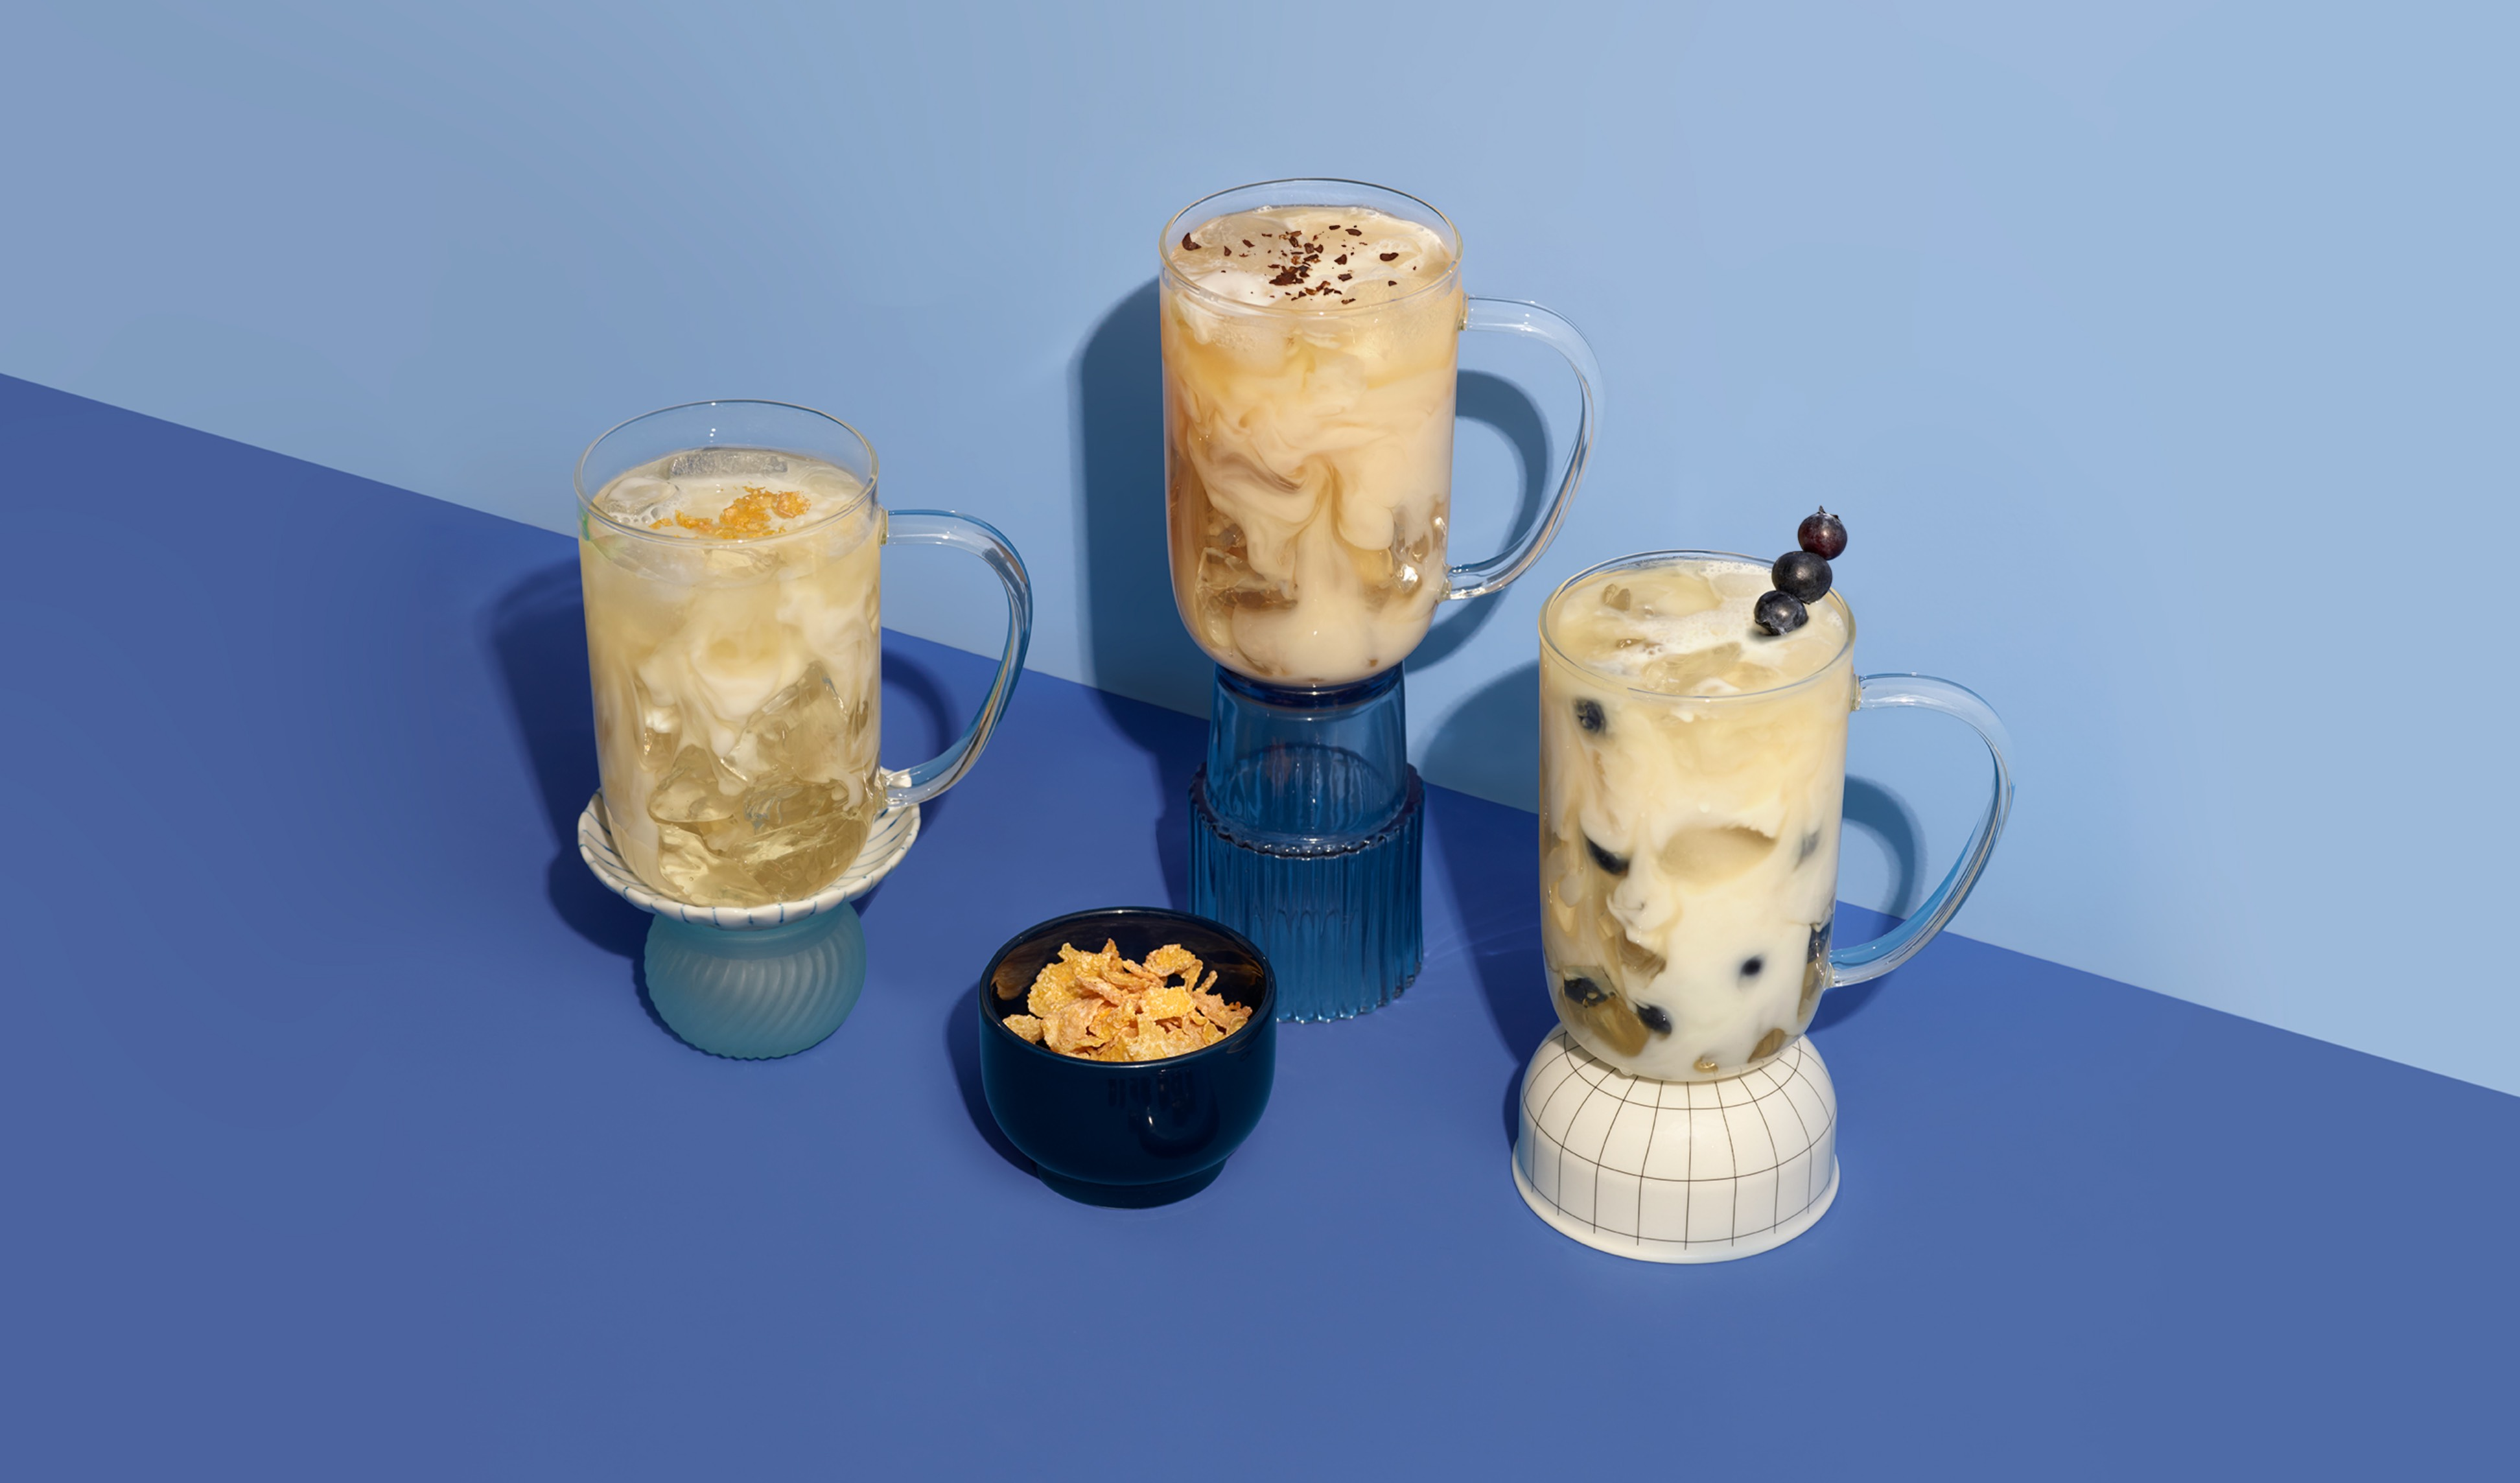 Three 16 oz clear cups with Frosted Cereal, Blueberry Shake and Vanilla Cappuccino iced lattes.